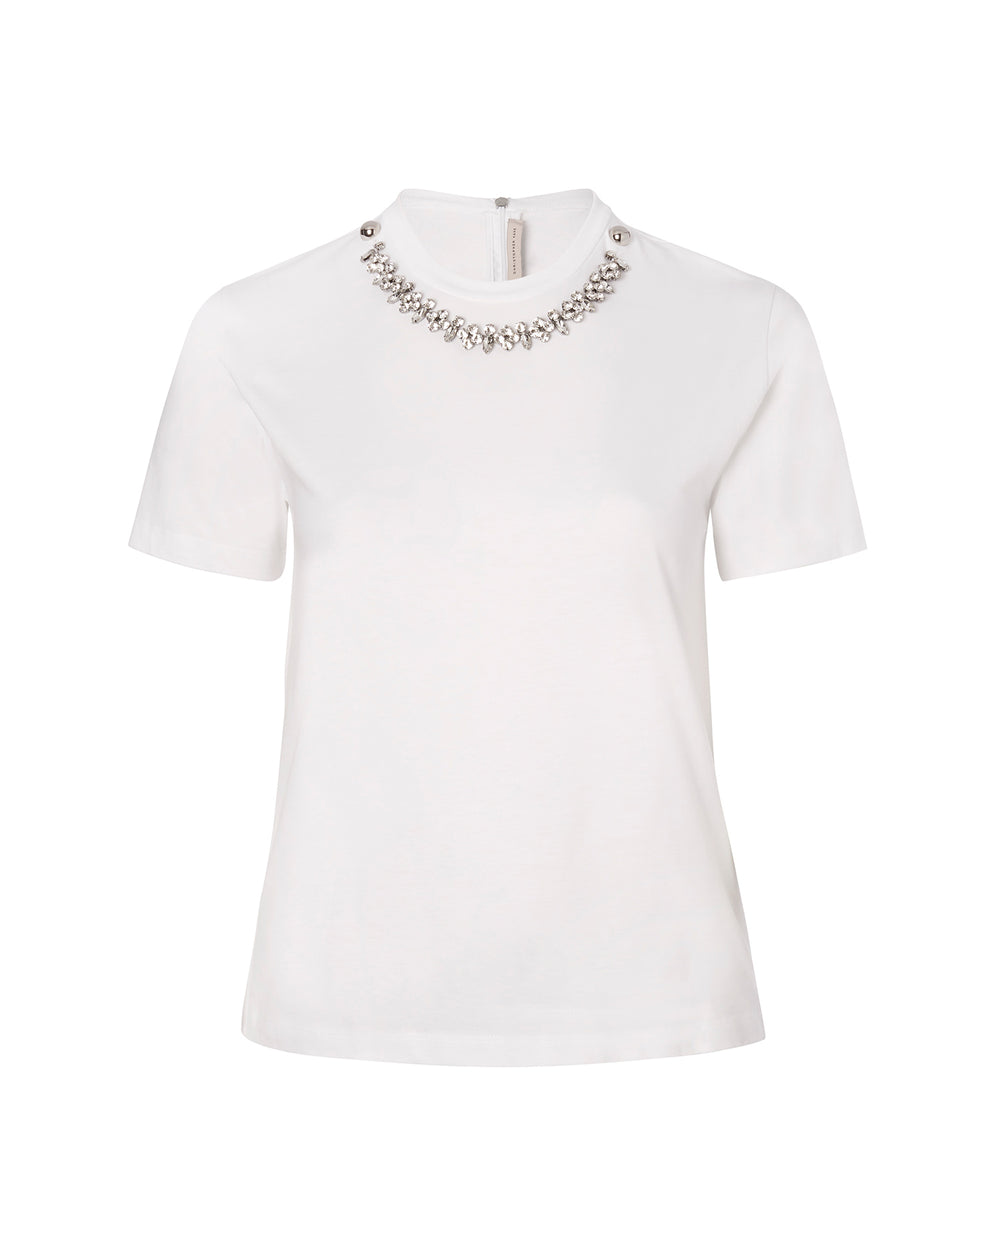 Crystal Necklace T-Shirt